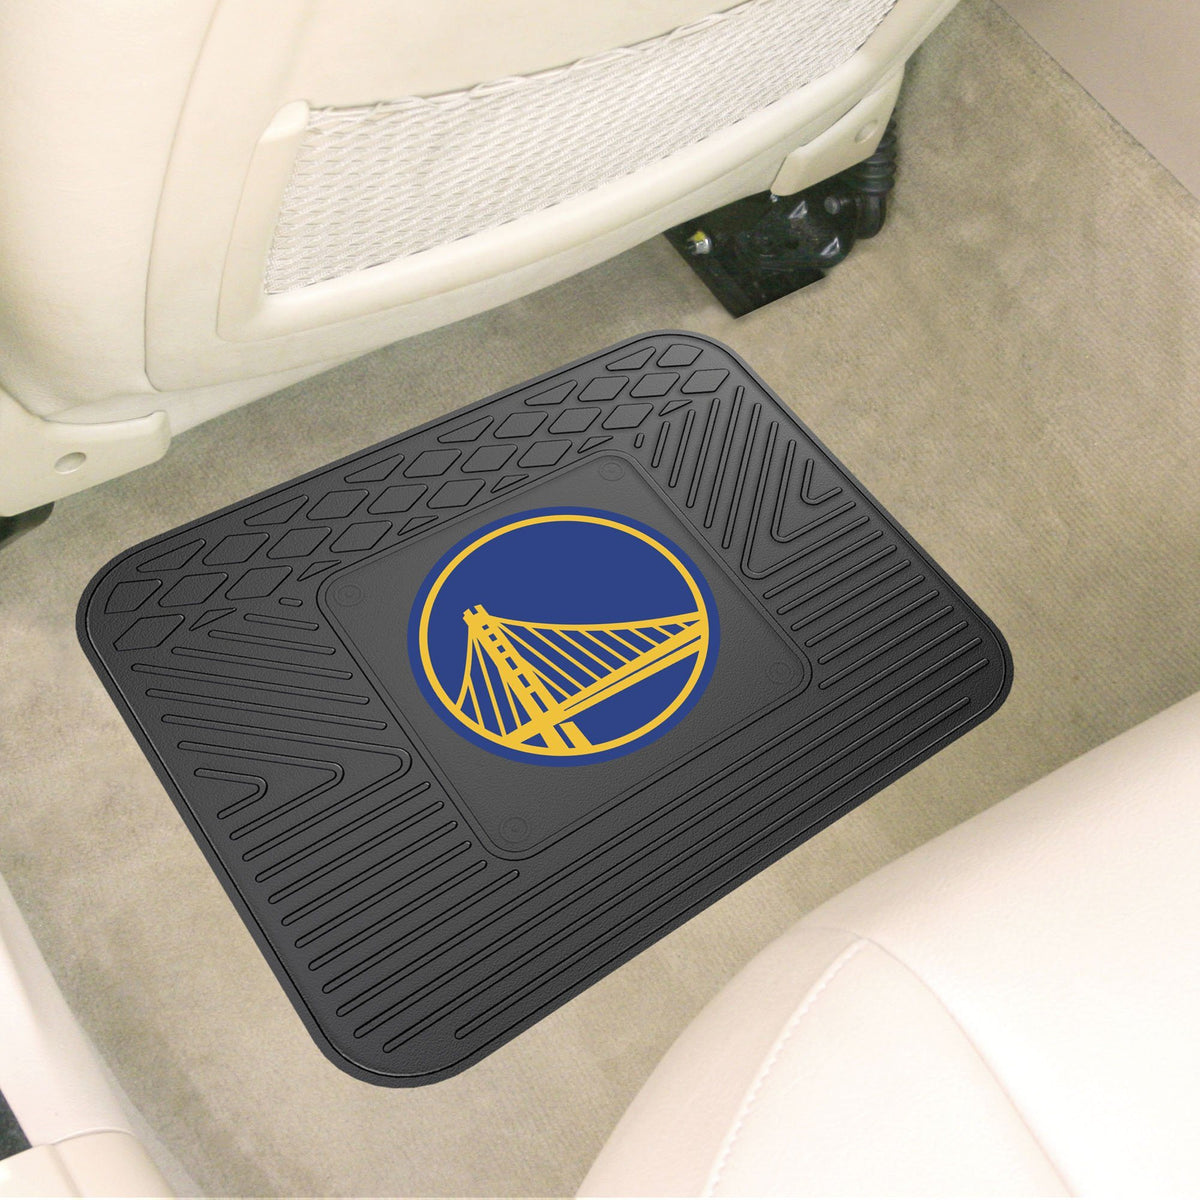 NBA - Utility Mat NBA Mats, Rear Car Mats, Utility Mat, NBA, Auto Fan Mats Golden State Warriors